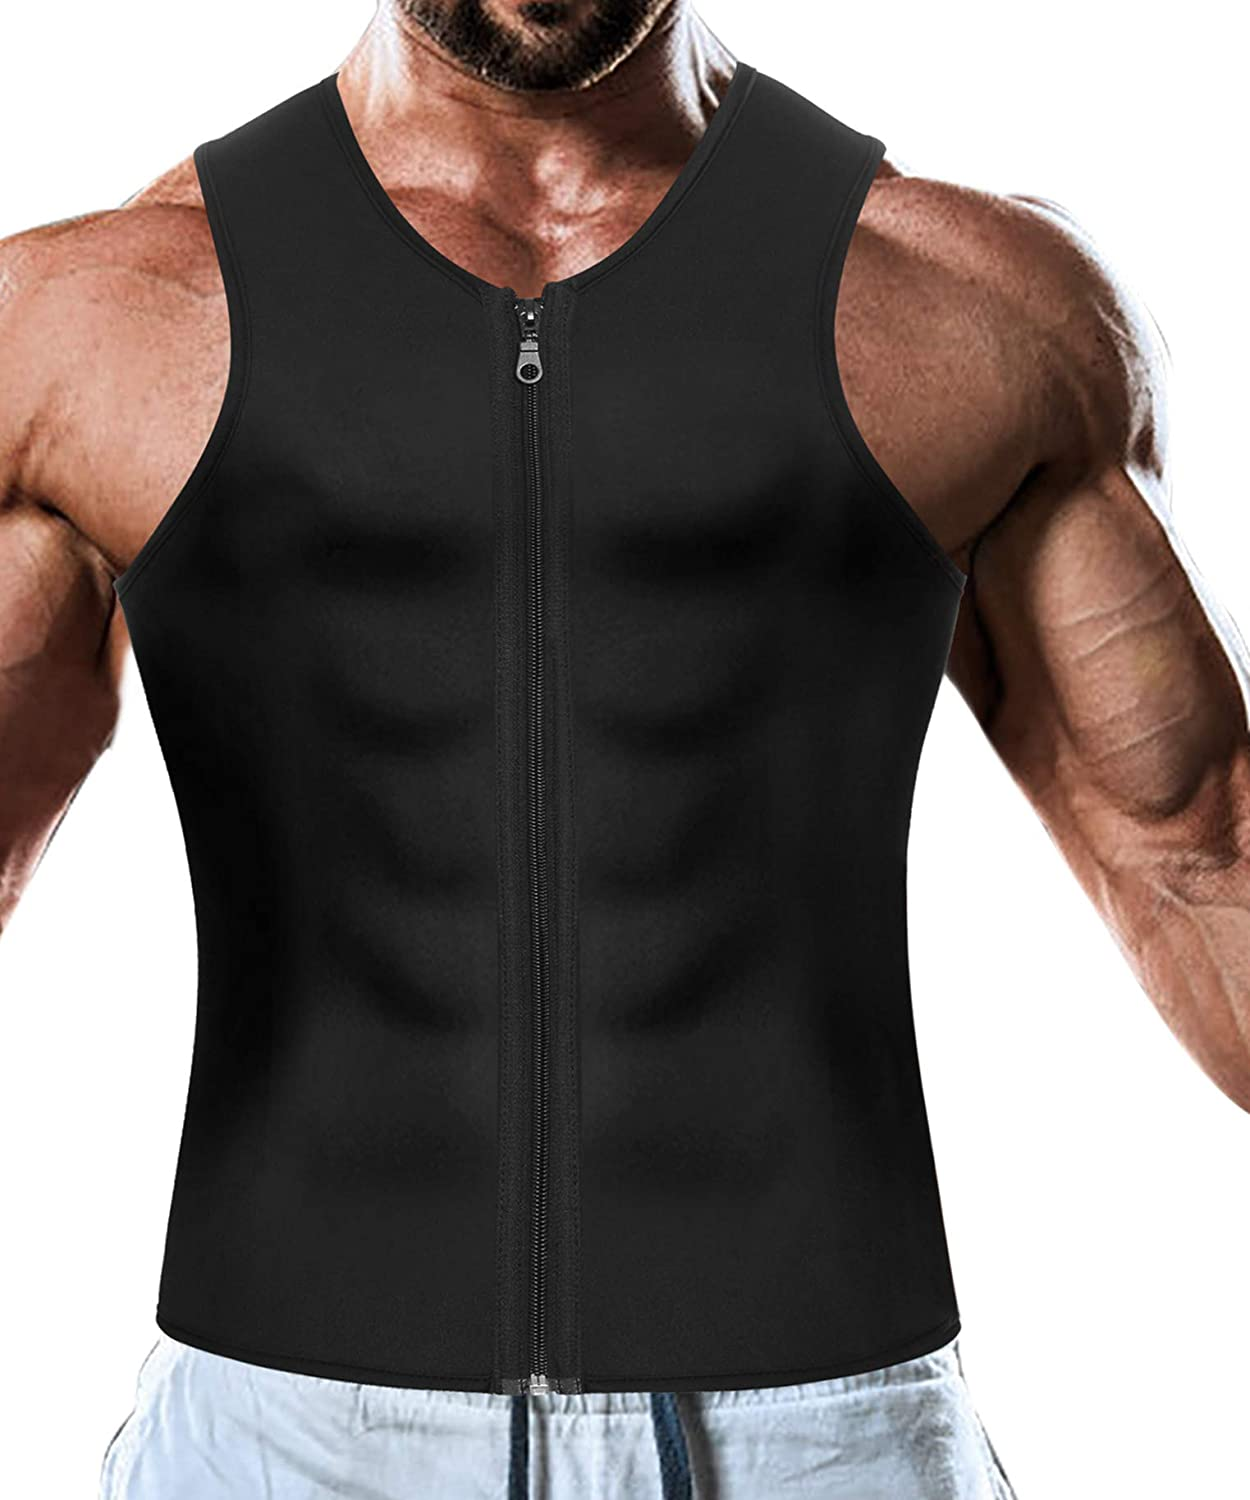 6b426171370 Men Waist Trainer Vest for Weight Loss Hot Neoprene Corset Body Shaper  Zipper Sauna Tank Top Workout Shirt  Amazon.co.uk  Clothing